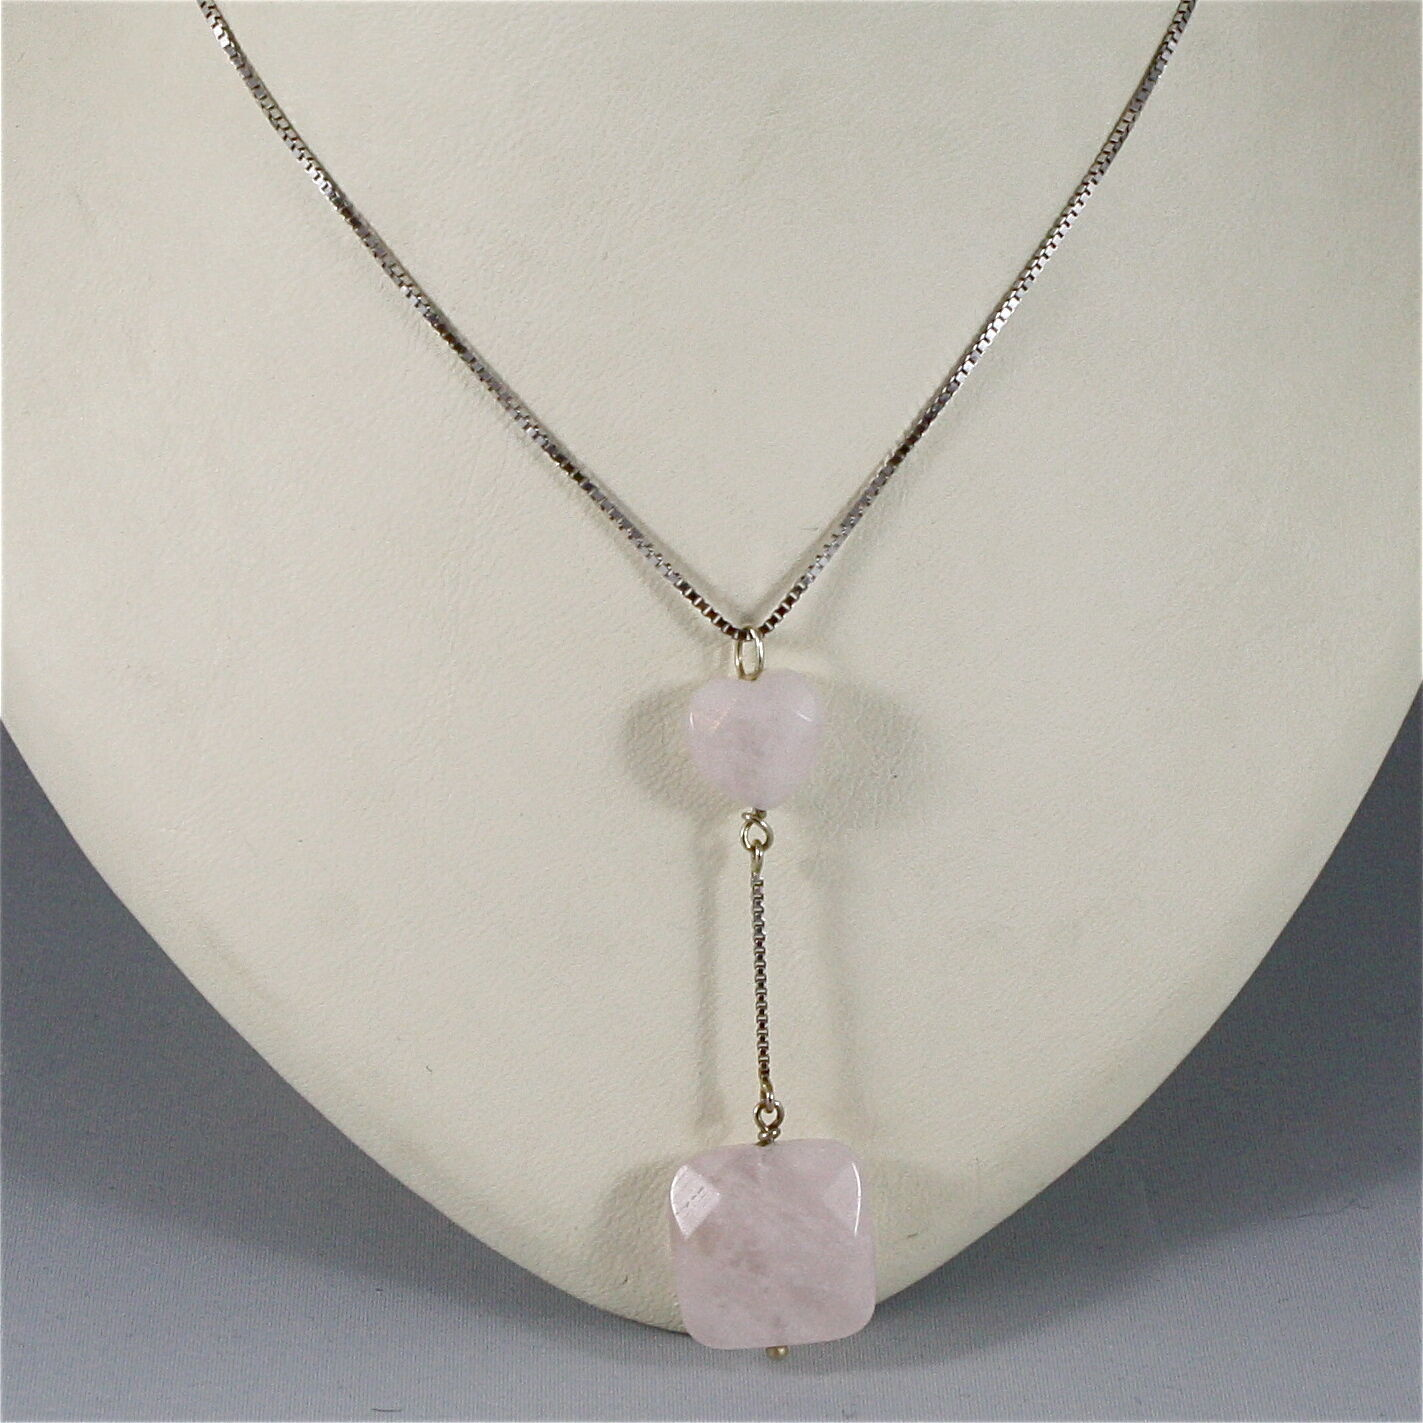 18K WHITE GOLD NECKLACE WITH PENDANT, HEART ROSE QUARTZ, MADE IN ITALY